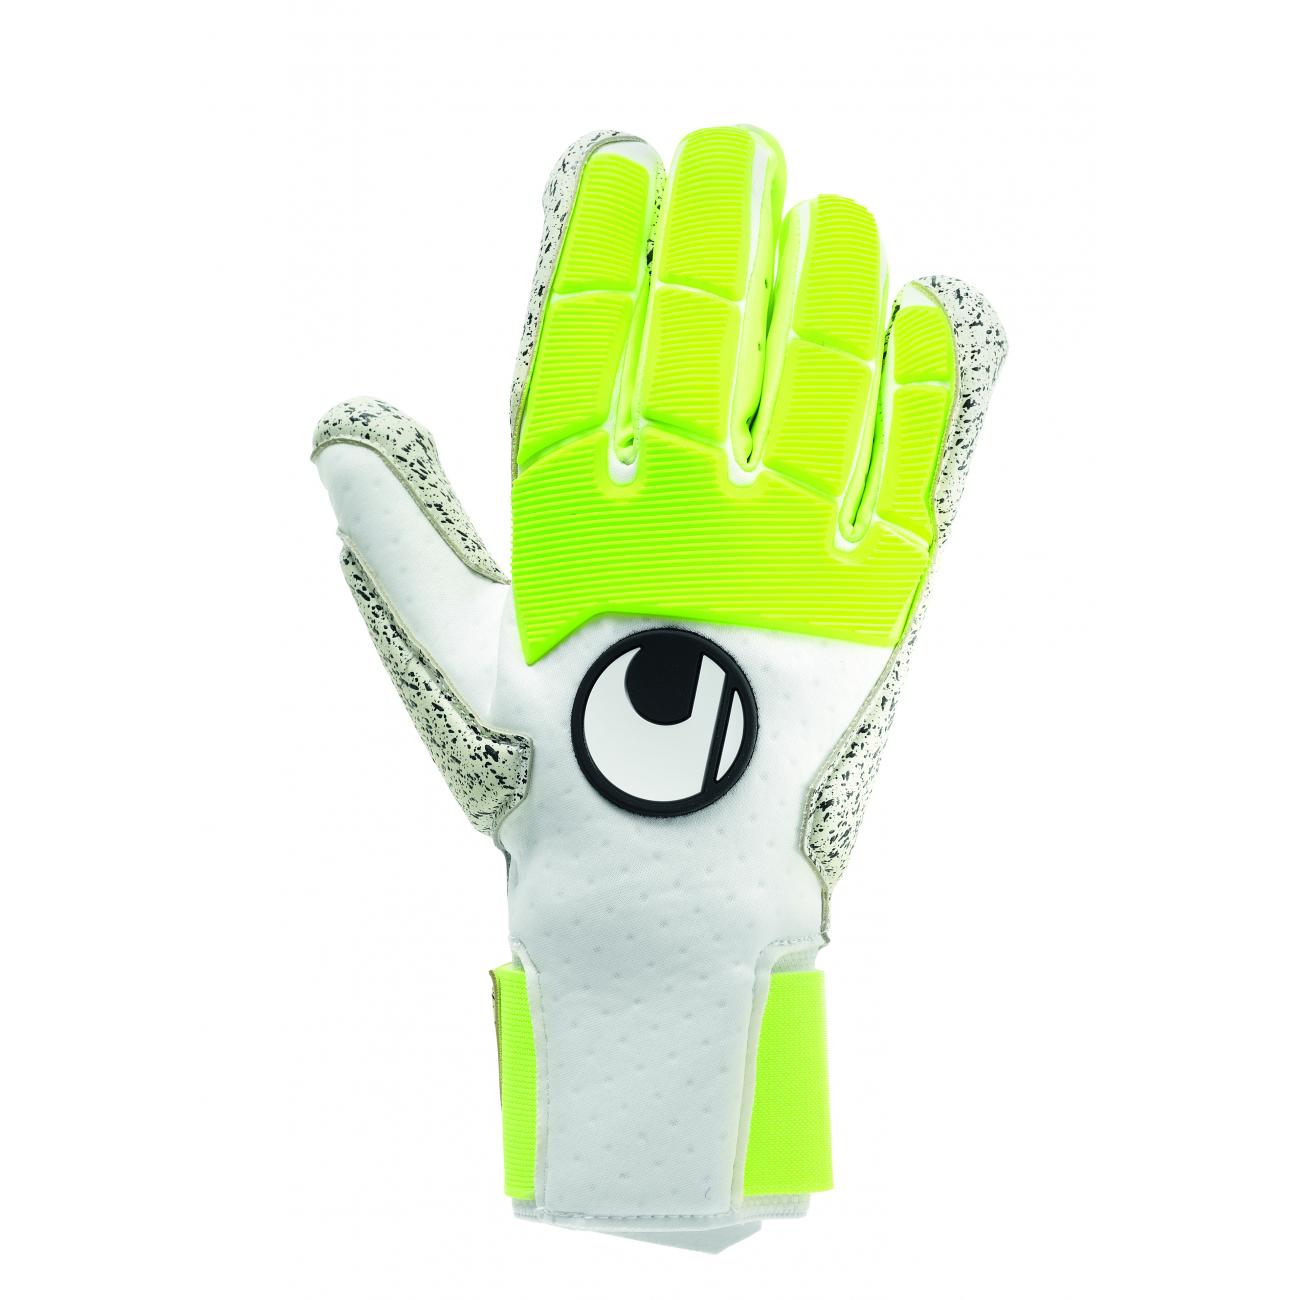 Uhlsport Pure Alliance supergrip+